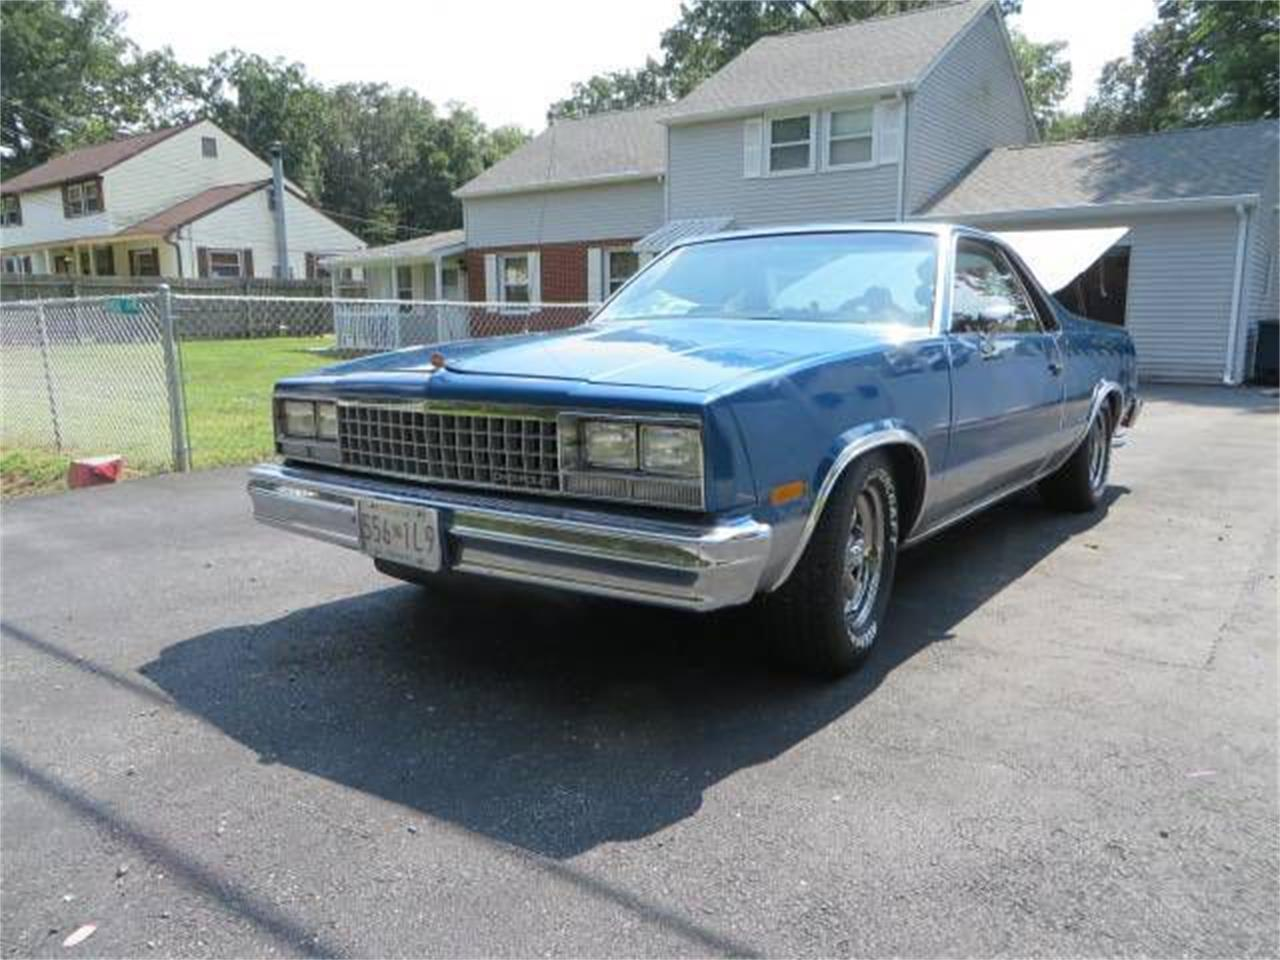 1984 Chevrolet El Camino (CC-1154862) for sale in West Pittston, Pennsylvania